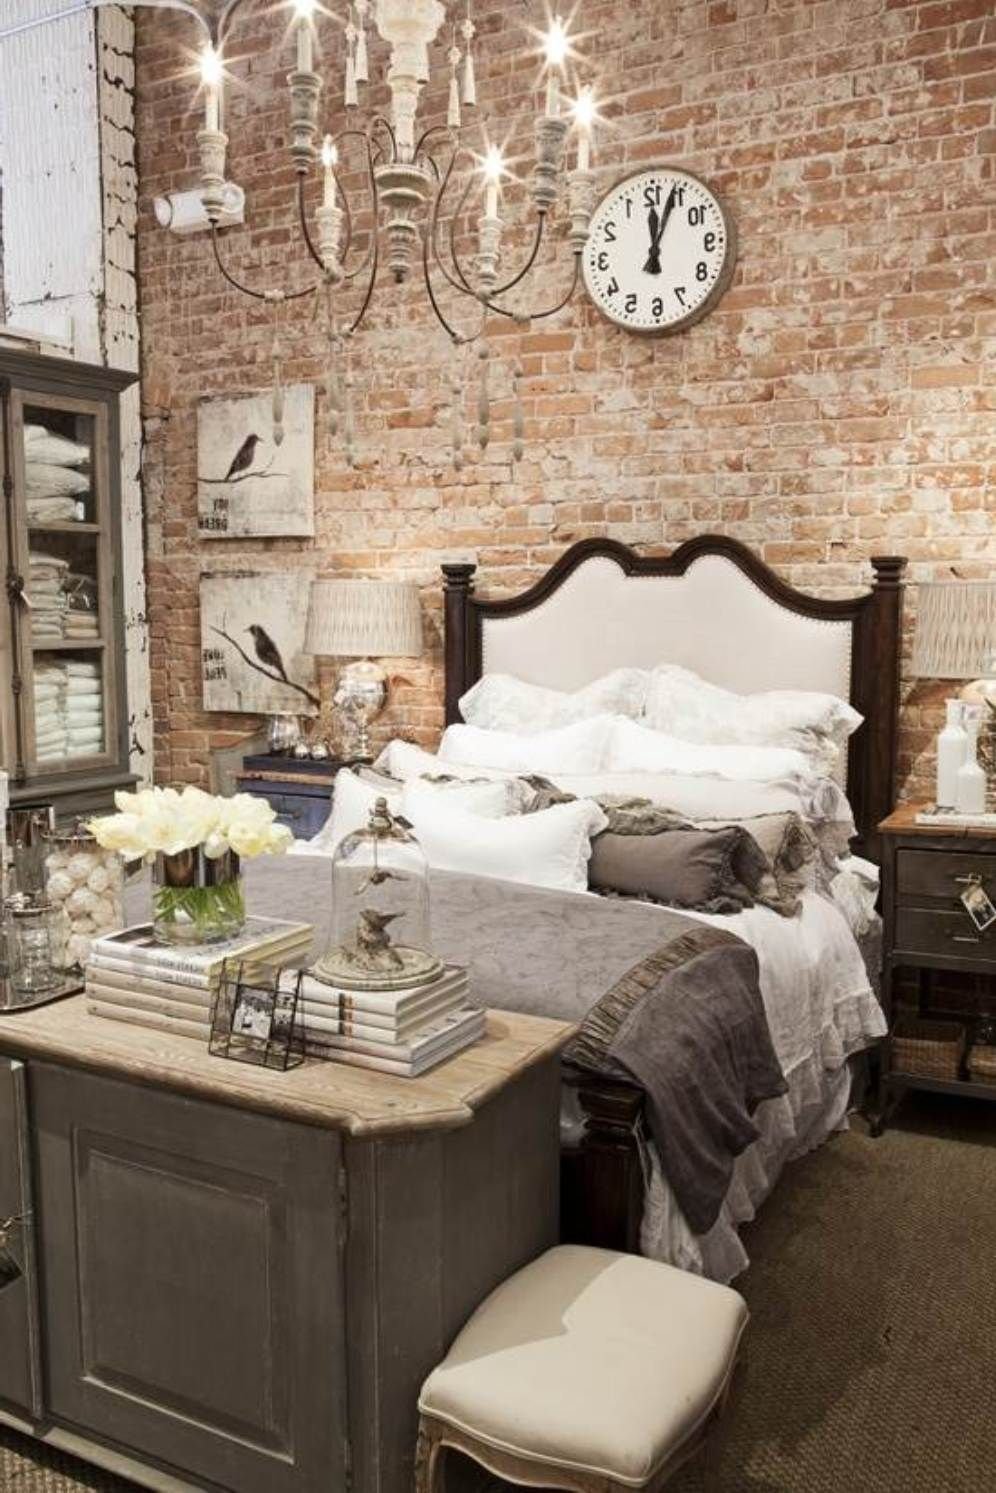 The Romantic Bedroom Ideas On A Budget Better Home And Garden